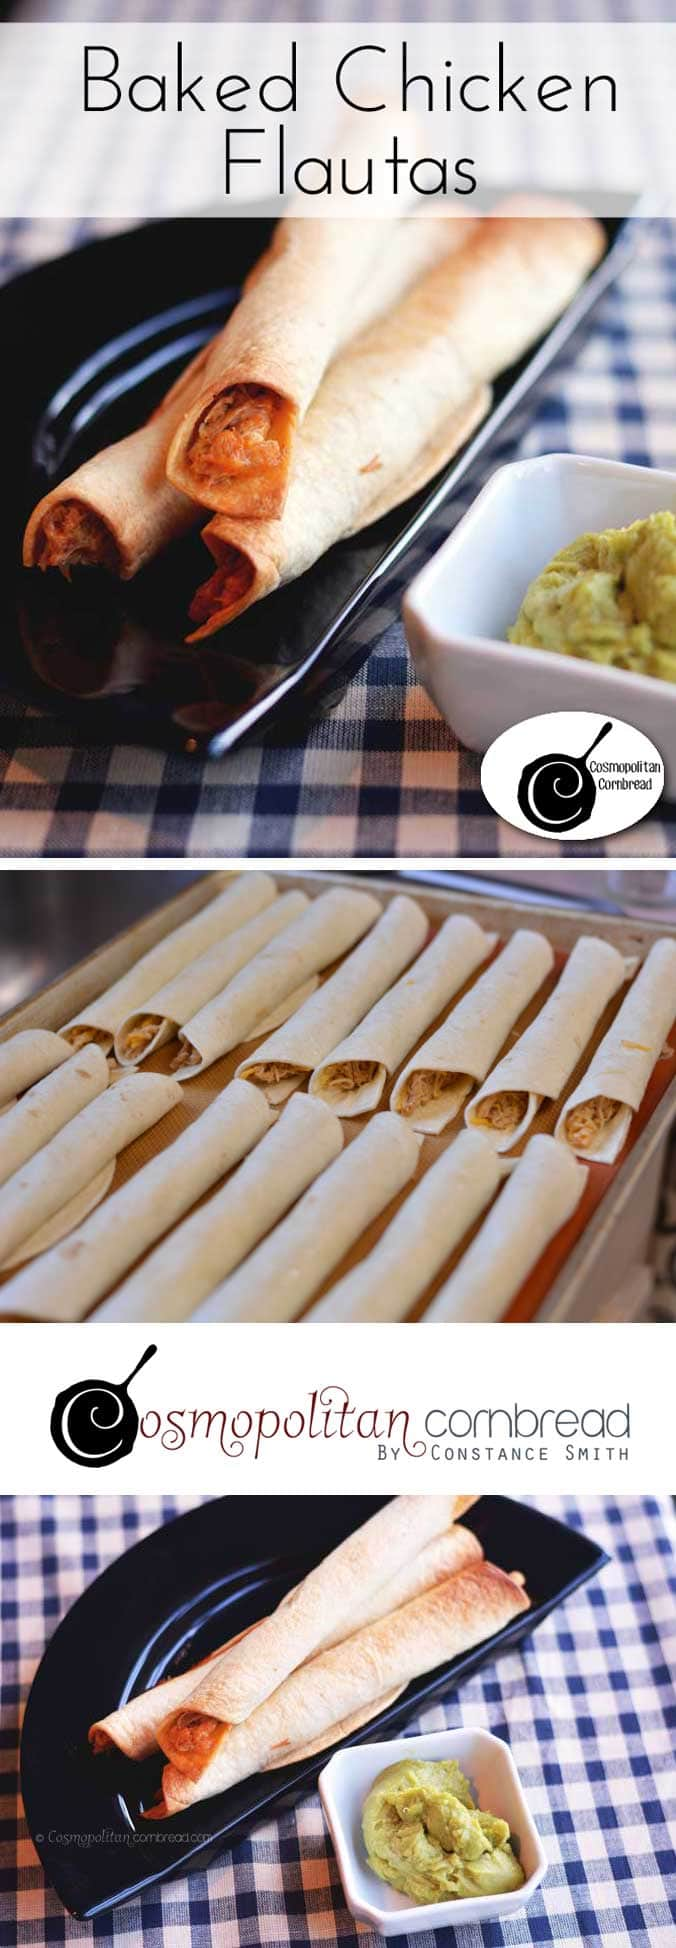 How to make Baked Chicken Flautas - they make a great appetizer or finger food meal. Get the recipe from Cosmopolitan Cornbread